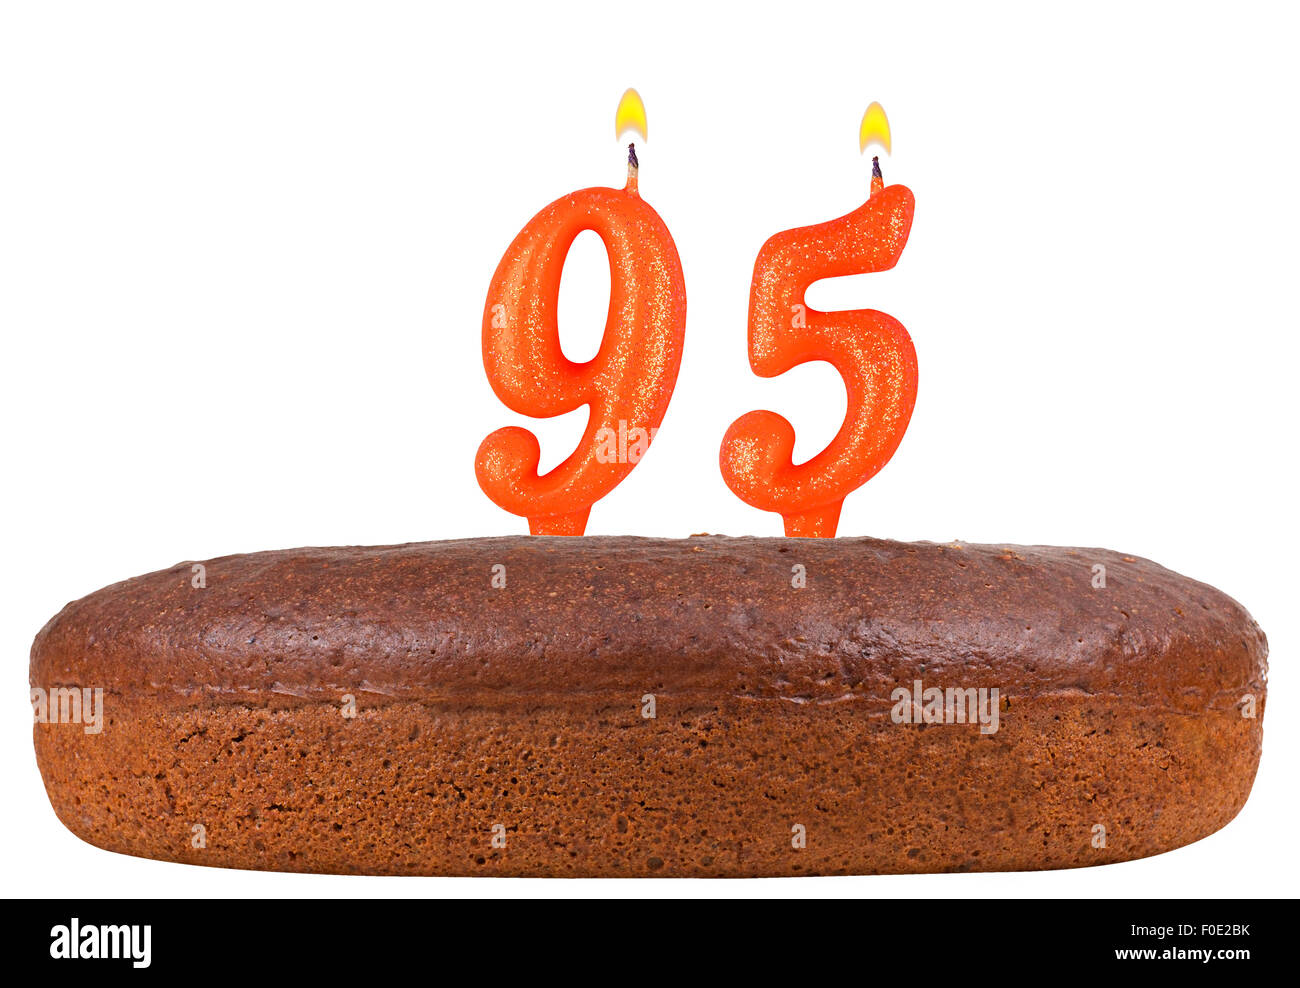 Birthday Cake Candles Number 95 Isolated Stock Photo